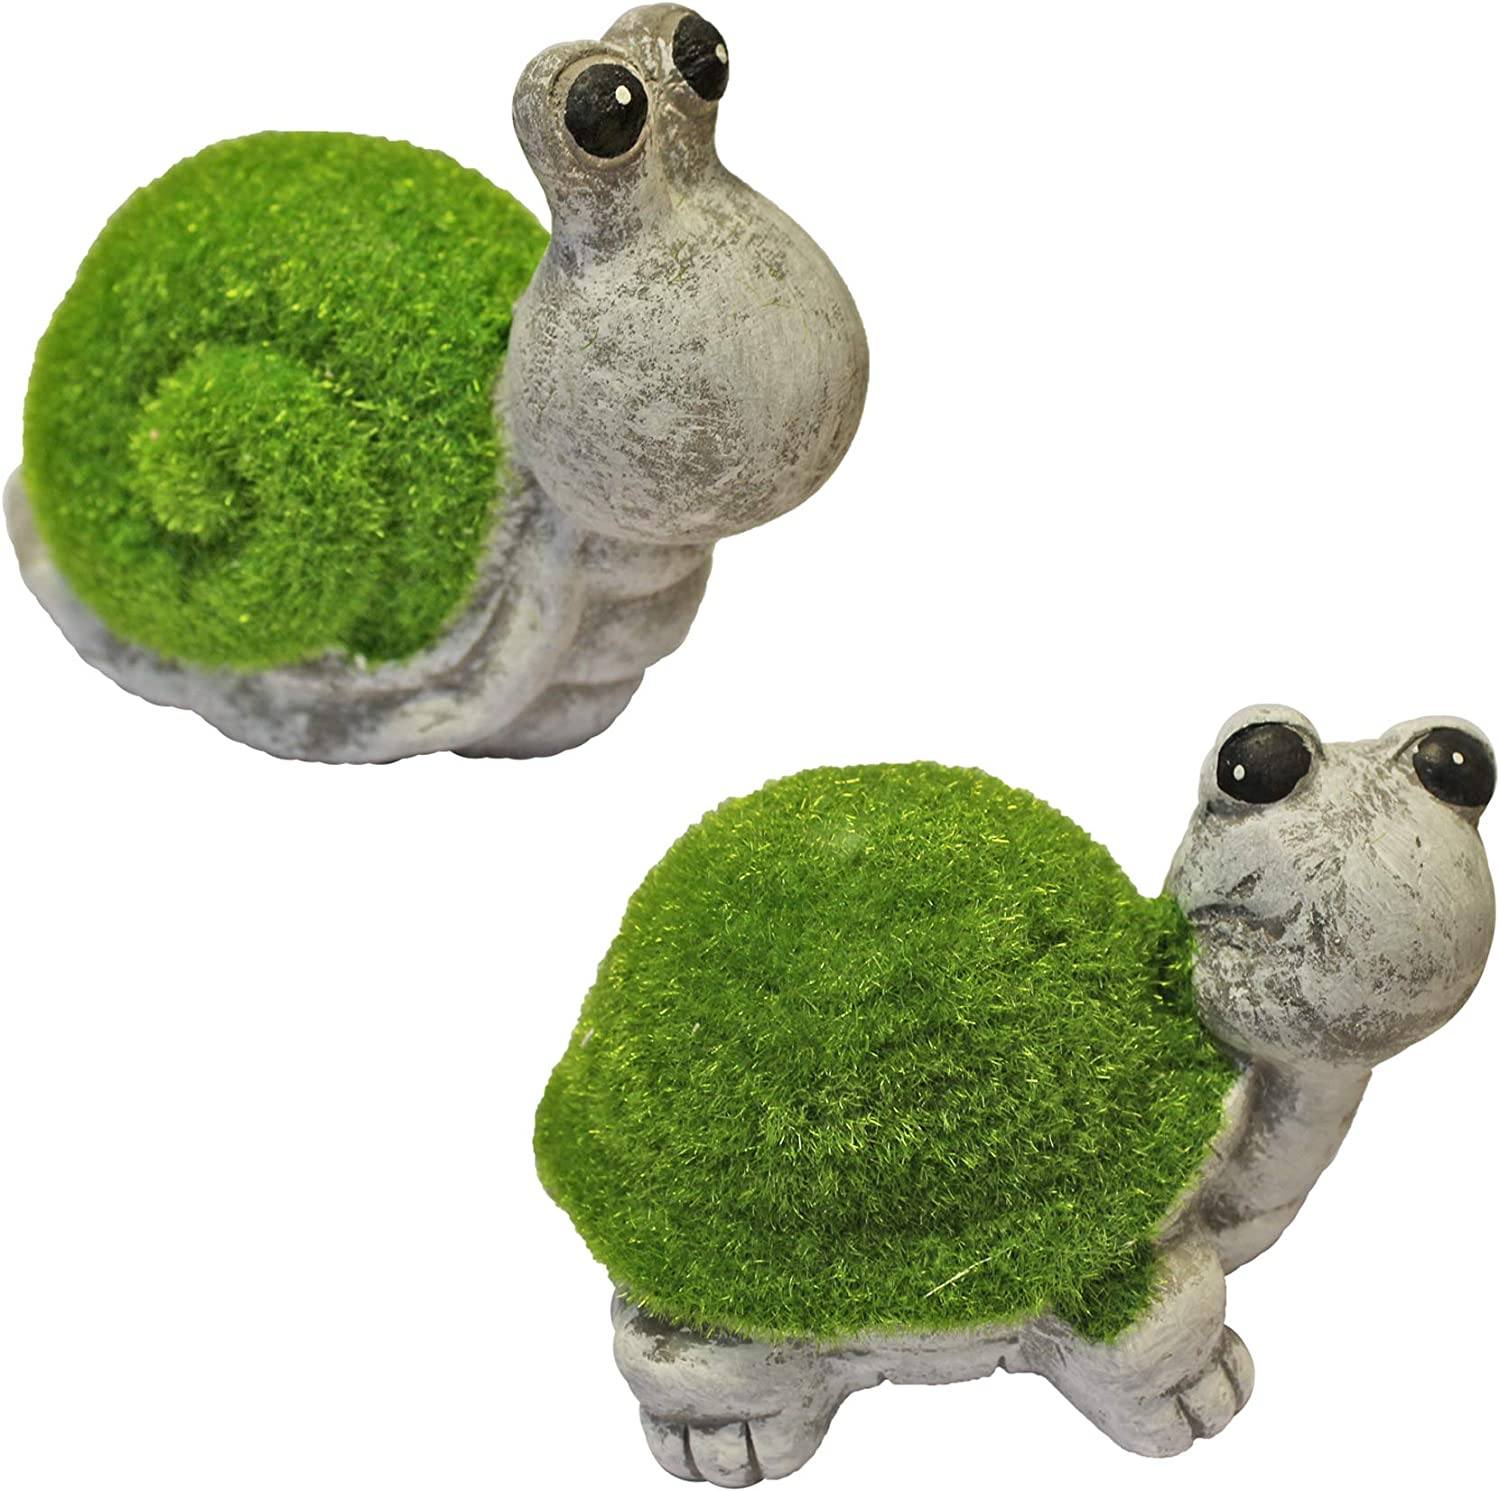 Roots /& Shoots Flock Grass /& Stone Effect Garden Ornament Hedgehog